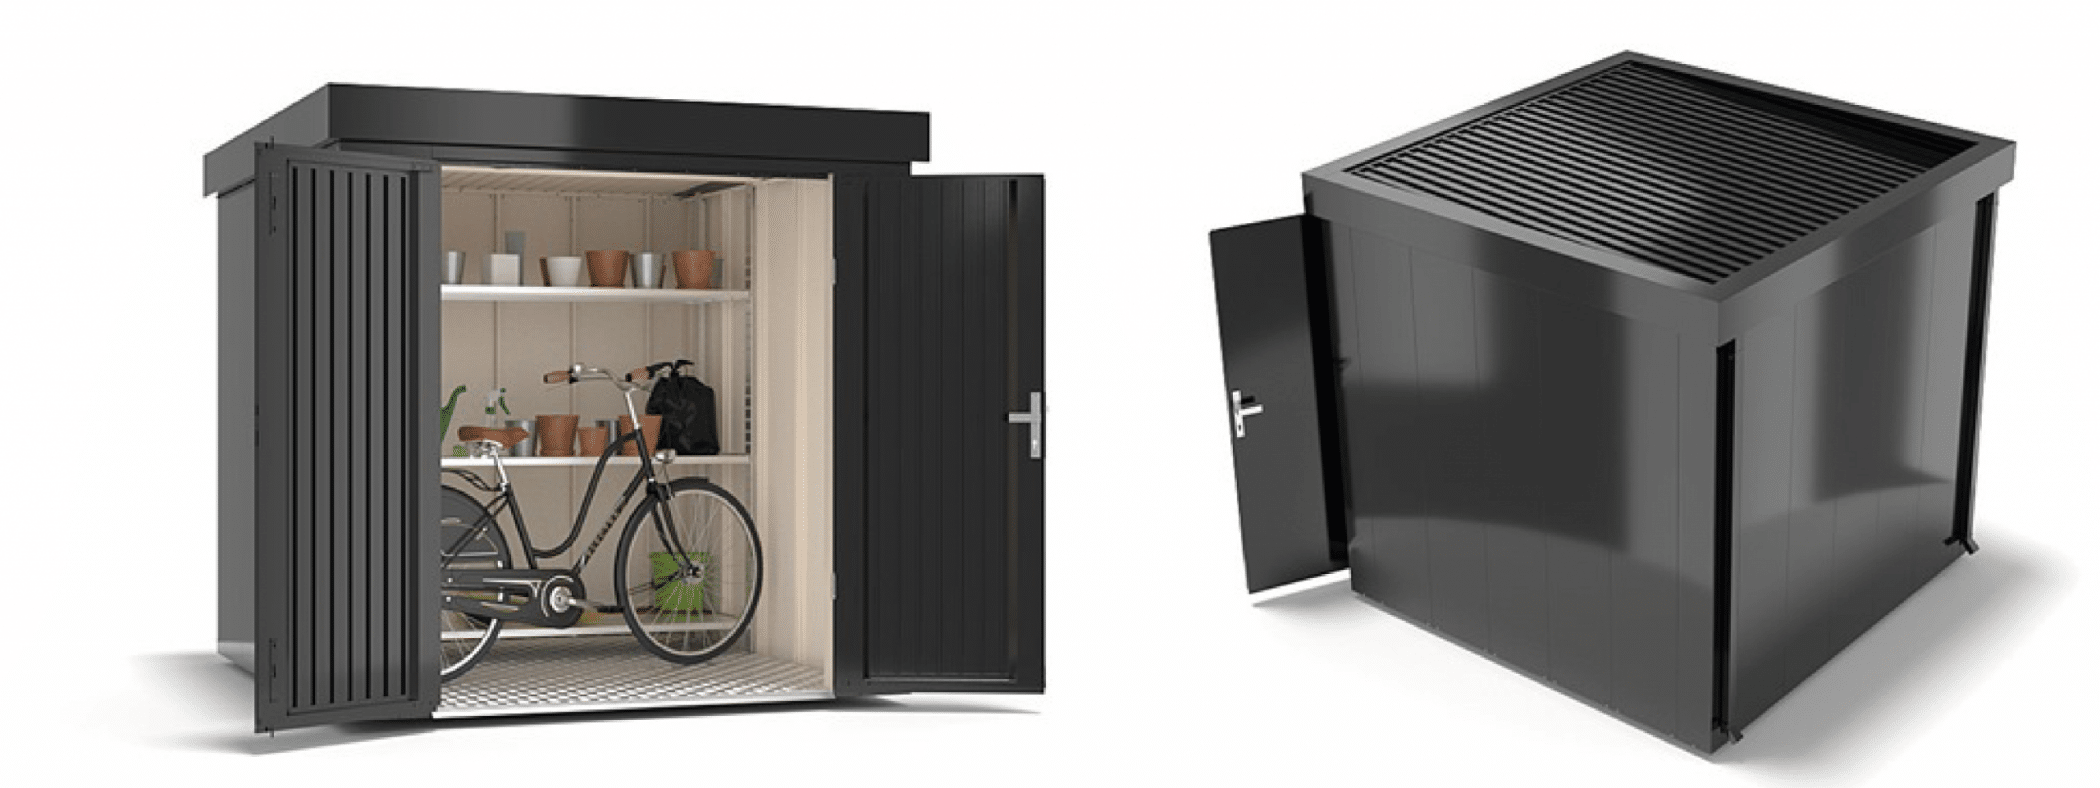 garden shed steel metal grey front and back